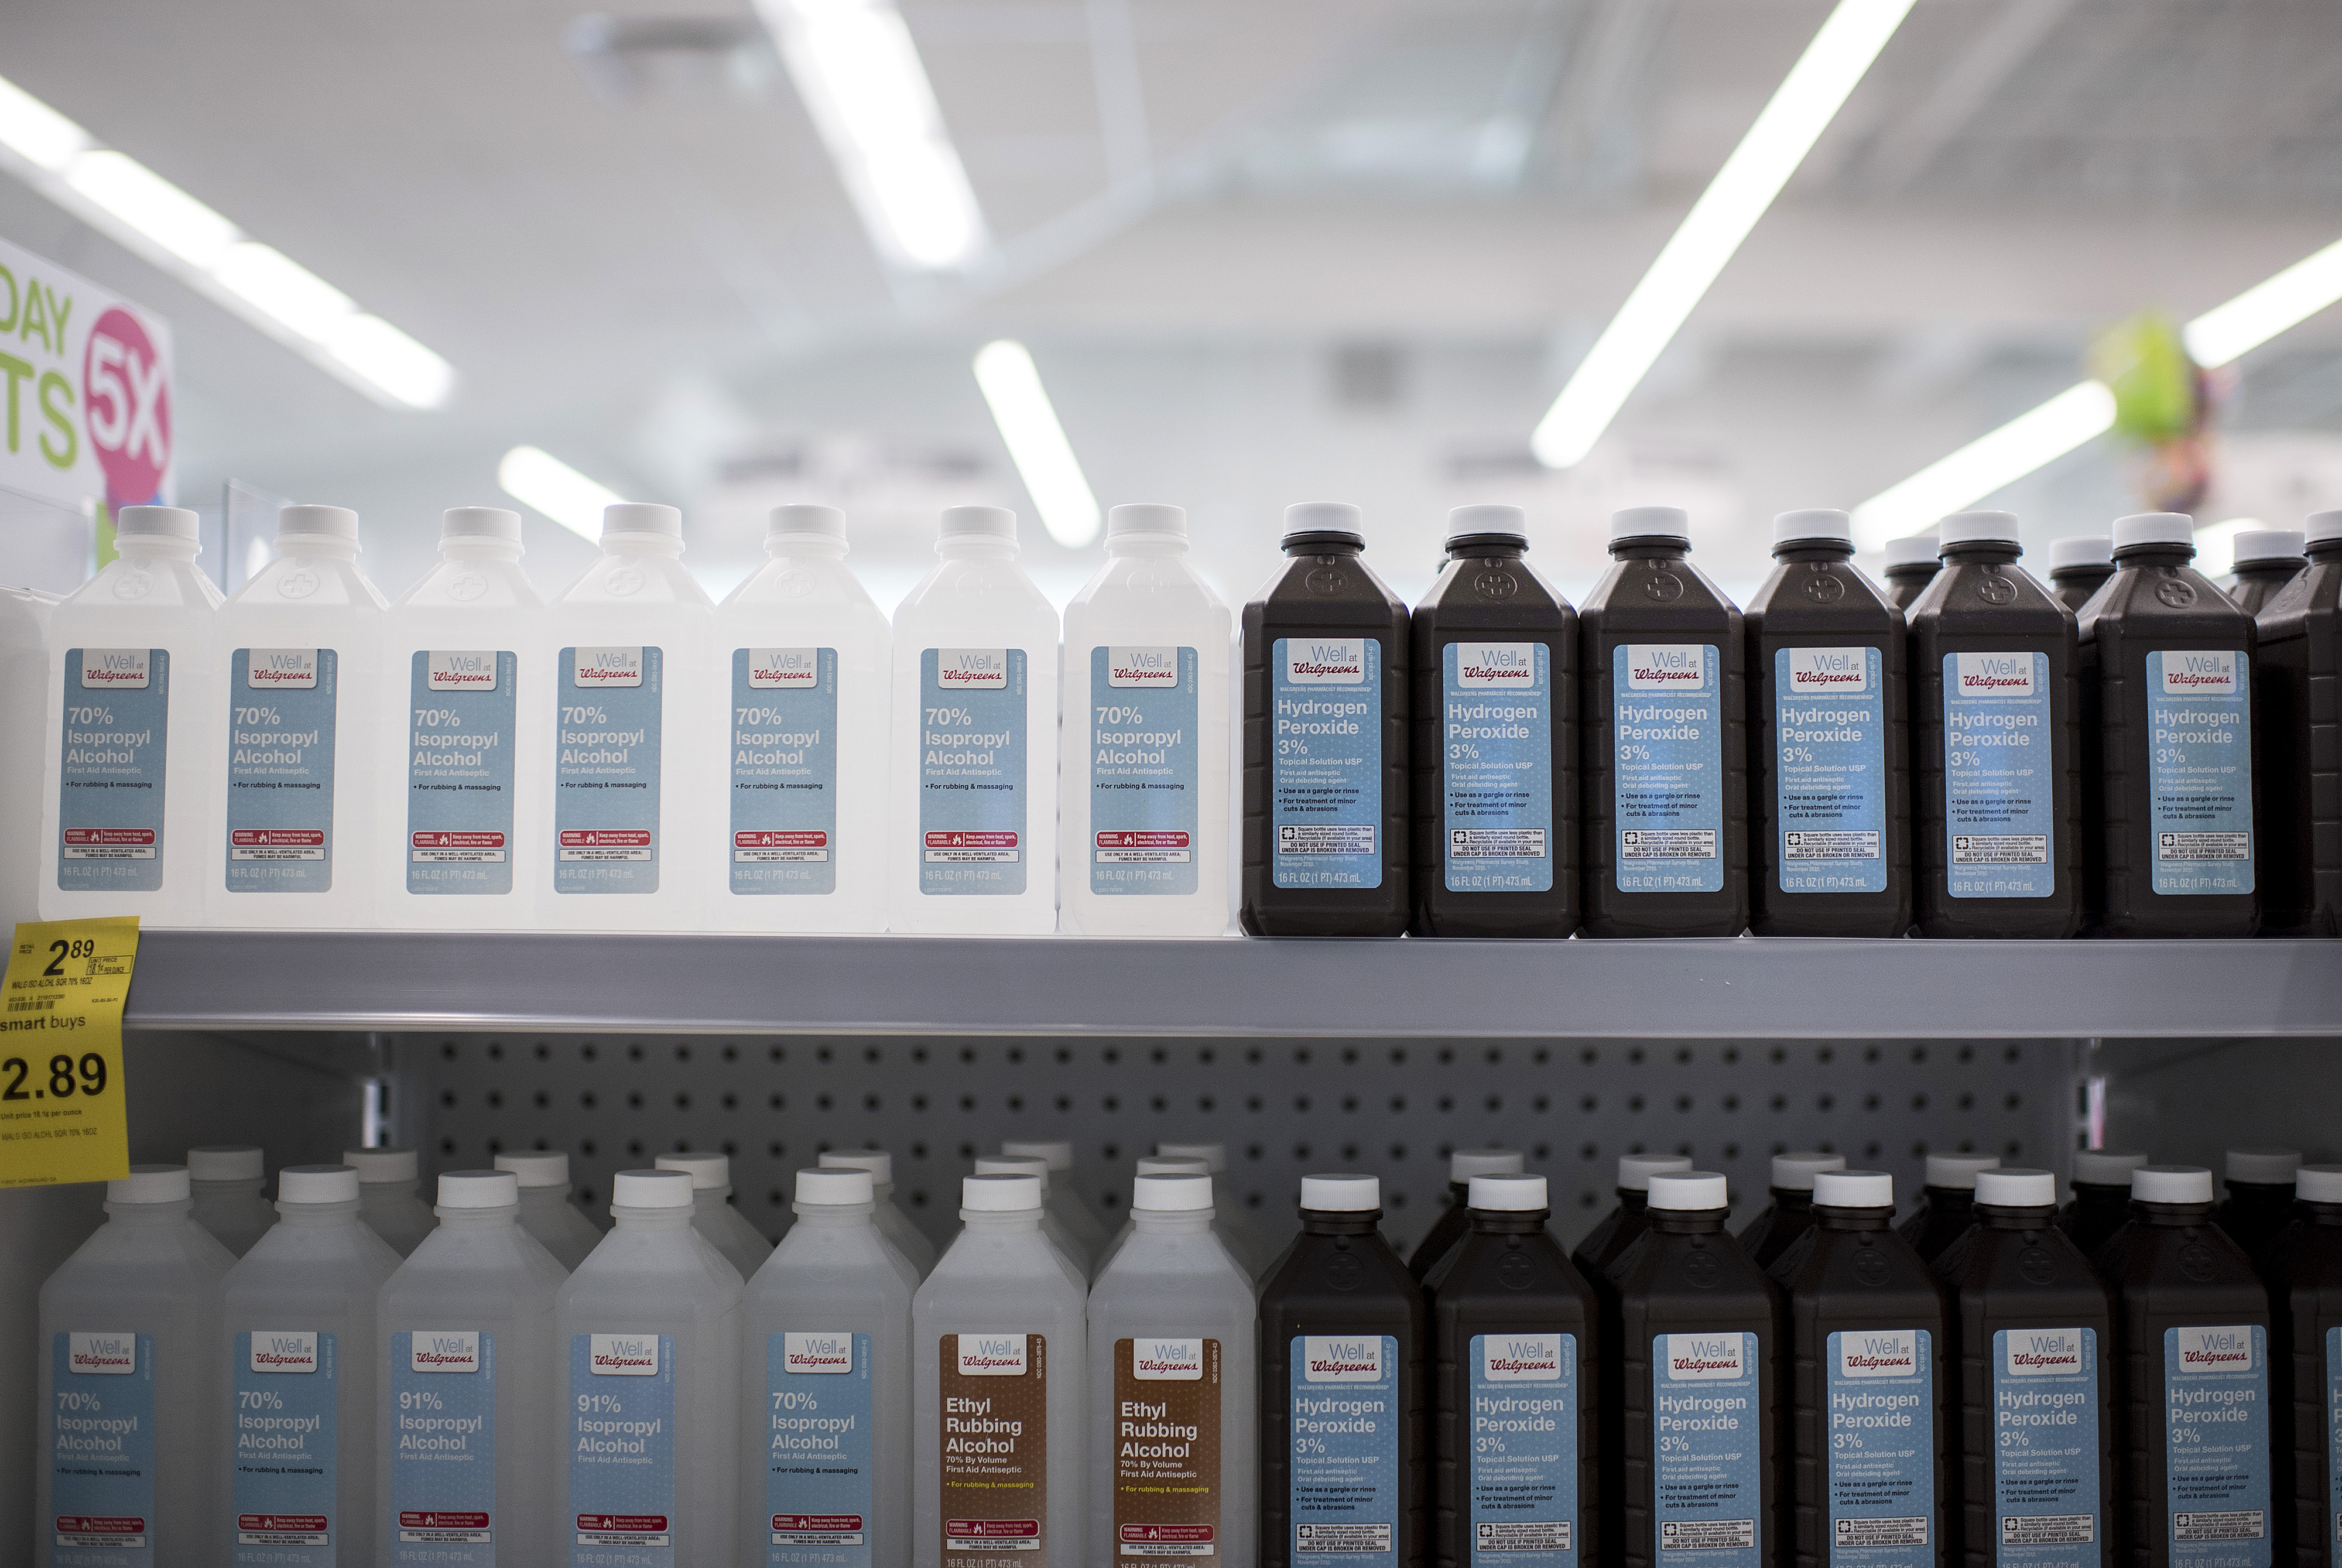 Bottles of rubbing alcohol and hydrogen peroxide are displayed for sale at a Walgreens Boots Alliance Inc. store in Elmwood Park, Illinois, U.S., on Tuesday, April 5, 2016.